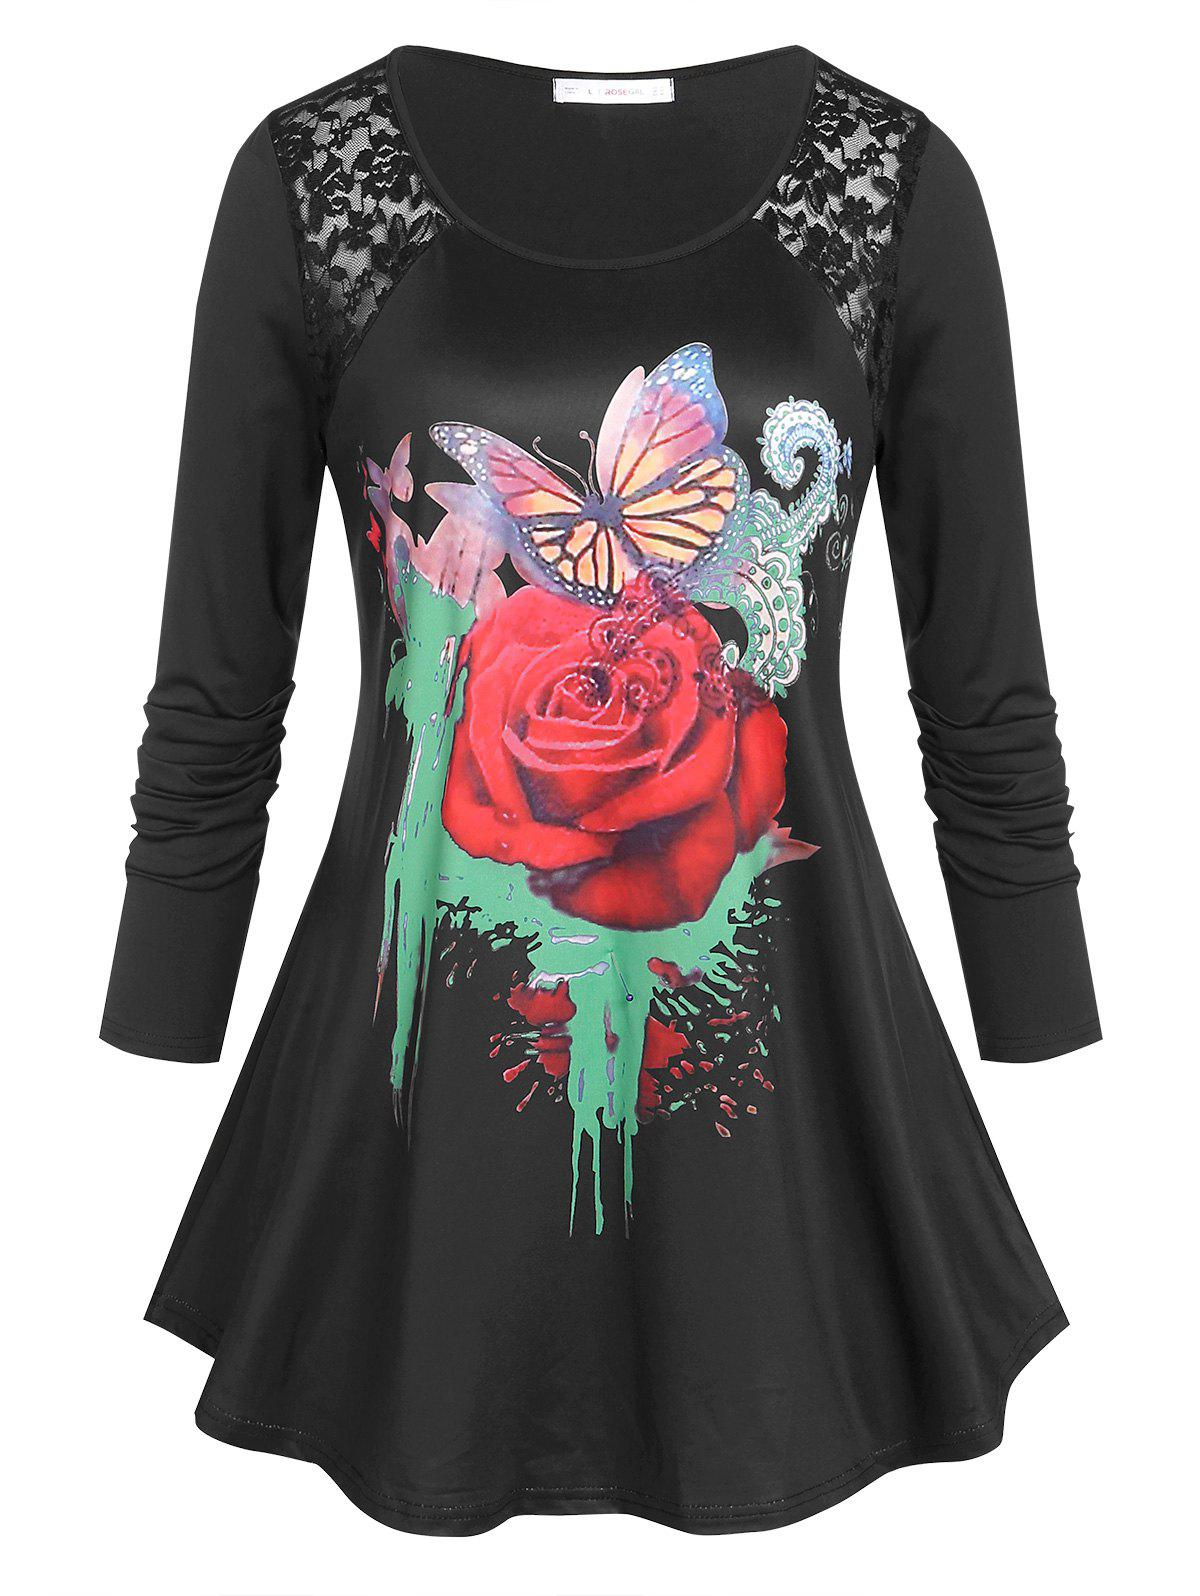 Shop Plus Size Rose Butterfly Print Graphic Tunic T-shirt